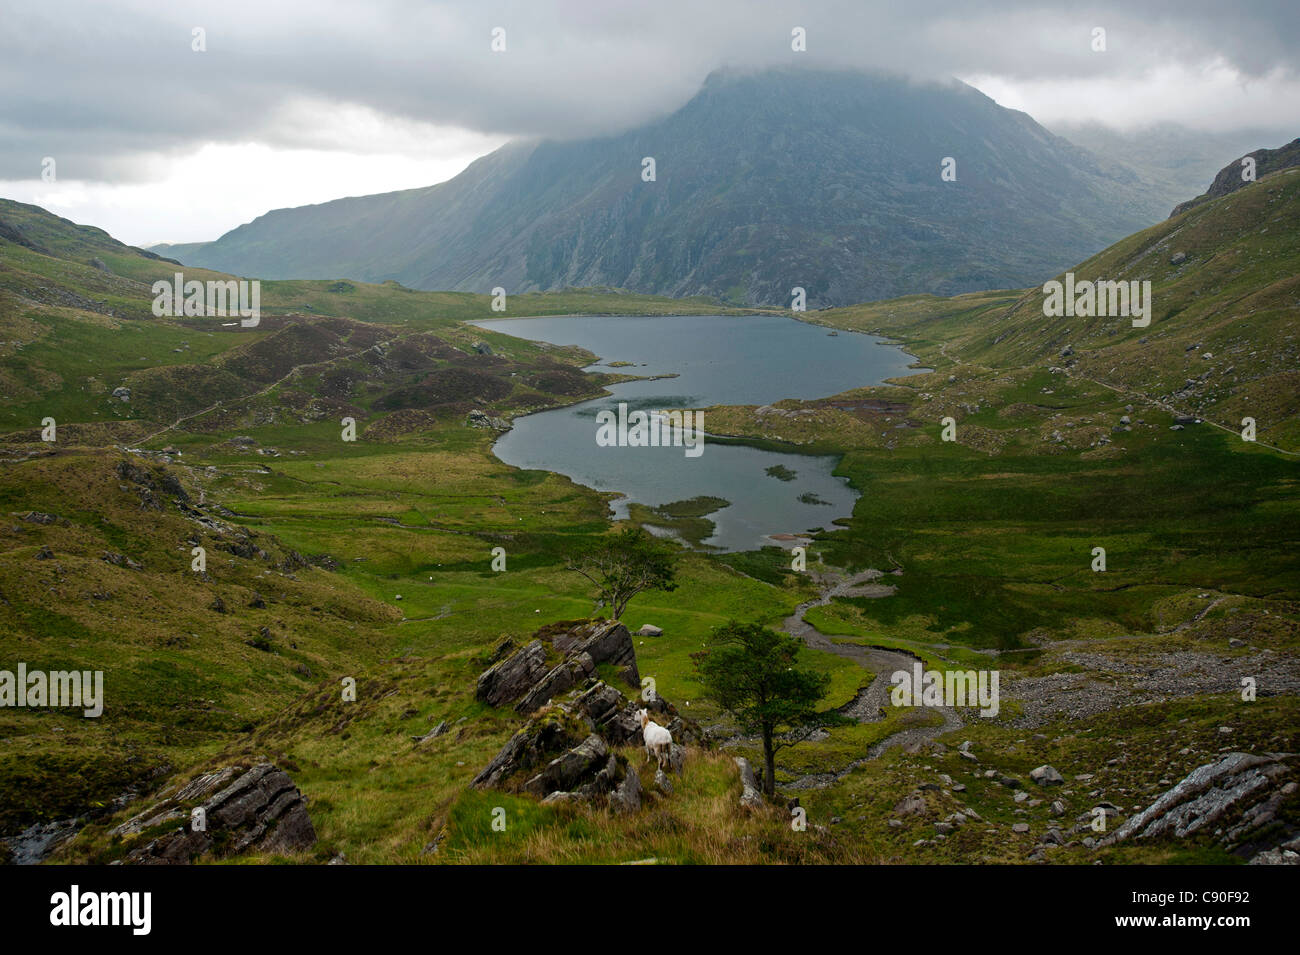 Ascent to Glyder Fawr, view to lake Llyn Idwal, Snowdonia National Park, Wales, UK - Stock Image